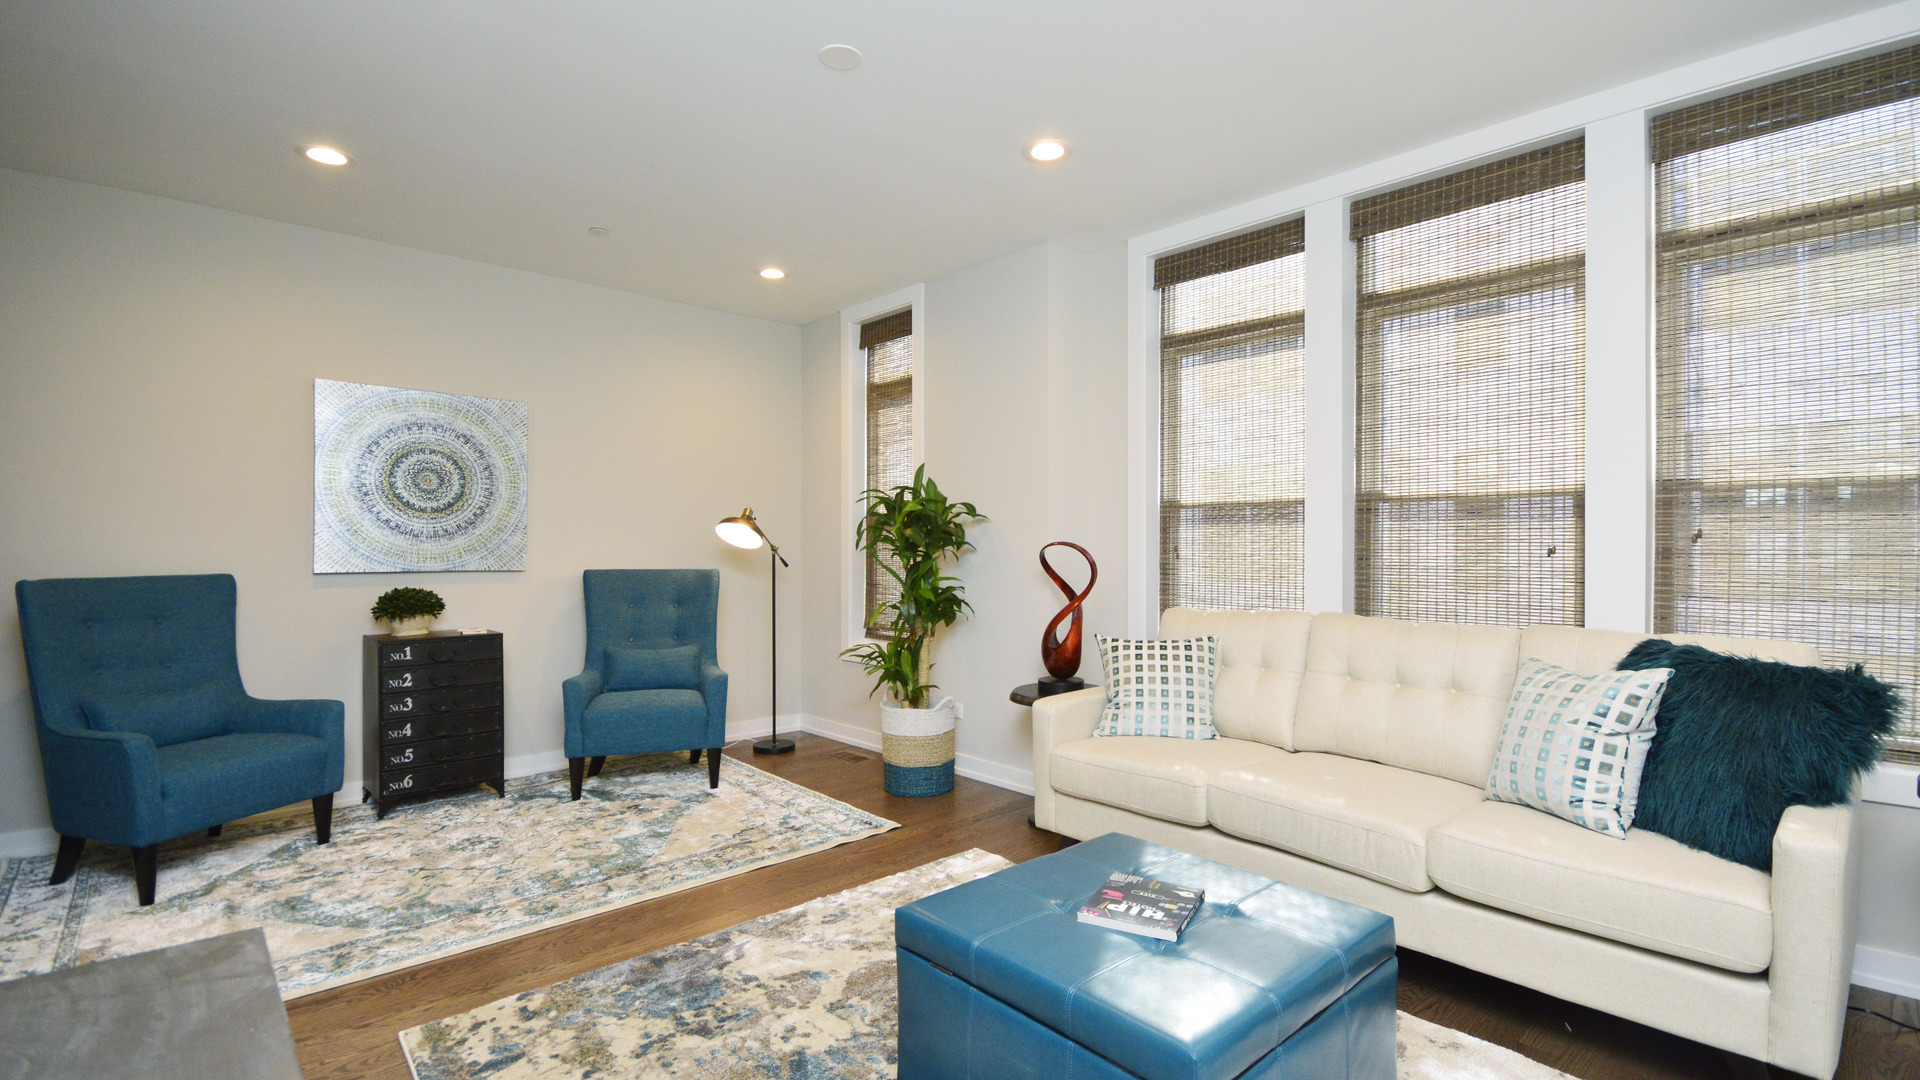 2255 West Coulter 1, CHICAGO, Illinois, 60608